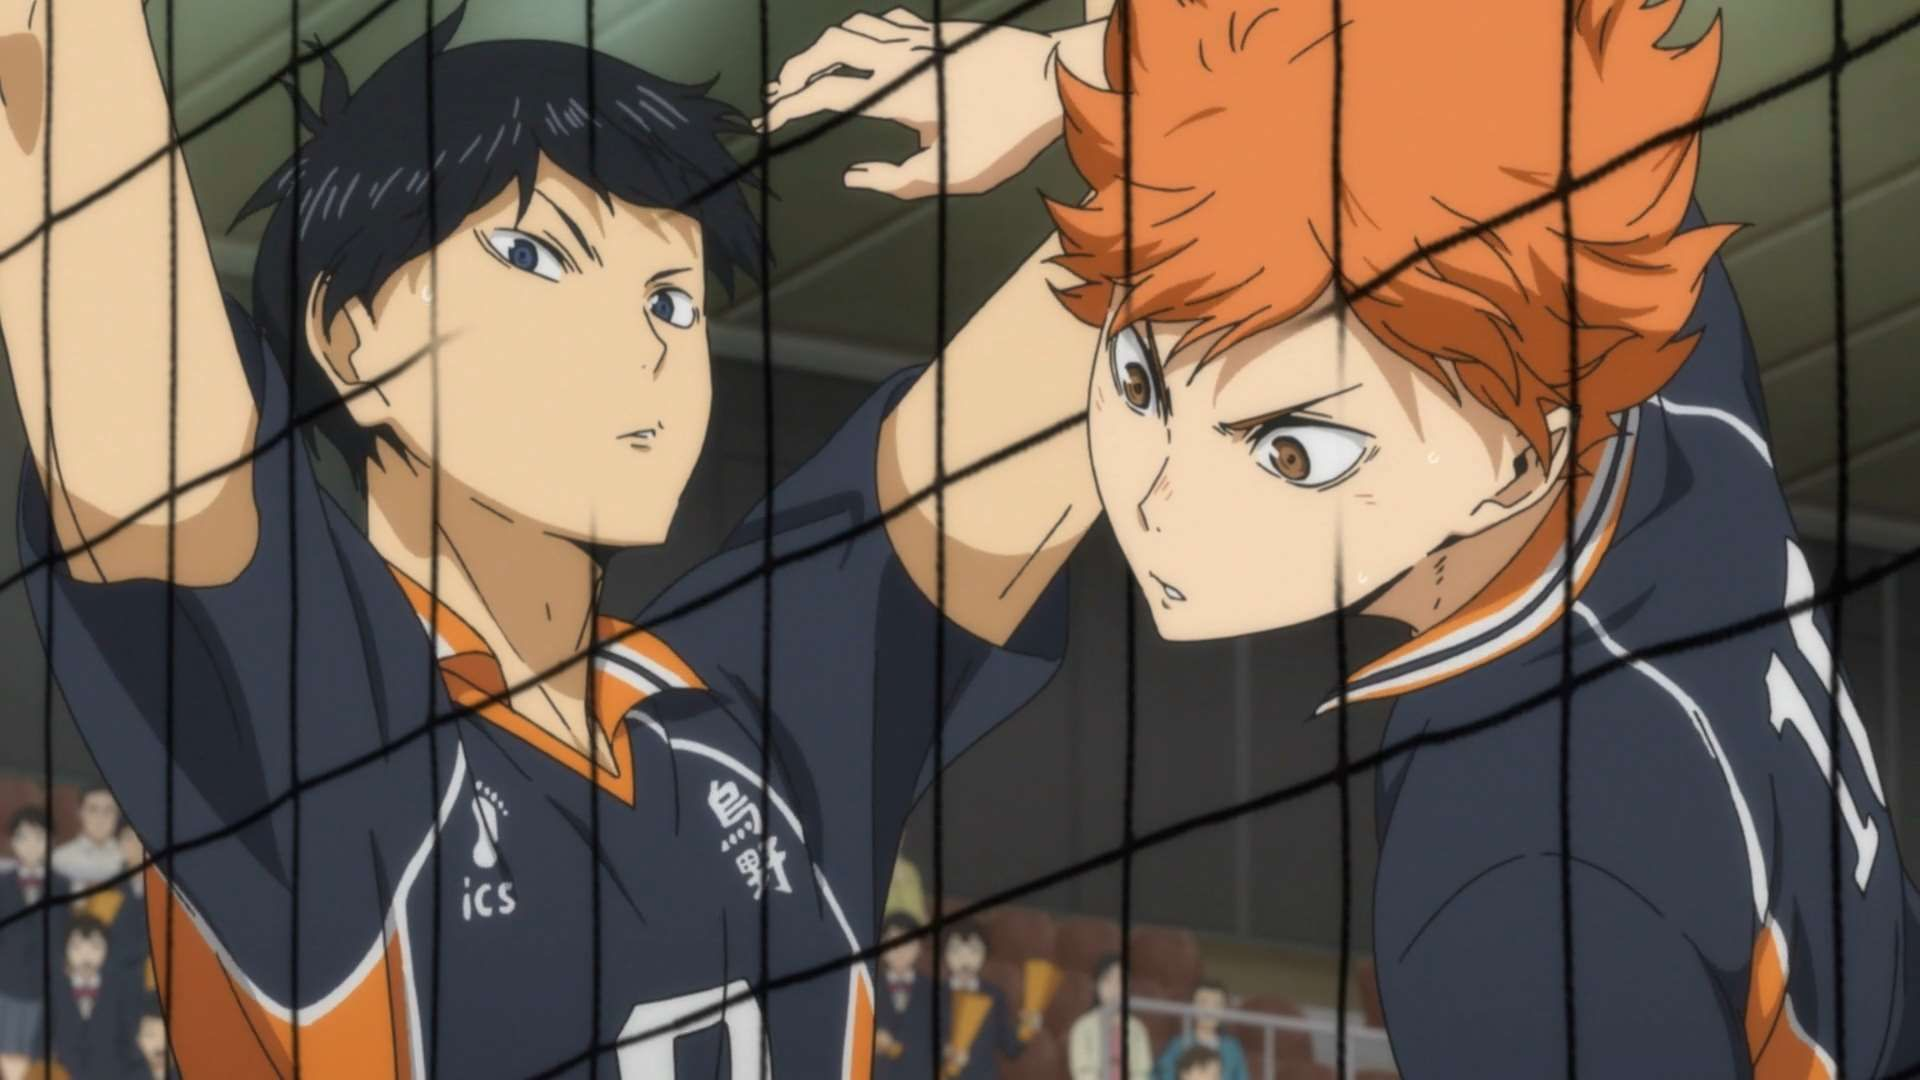 Haikyuu Season 4 Episode 25 Spoilers, Title and Preview